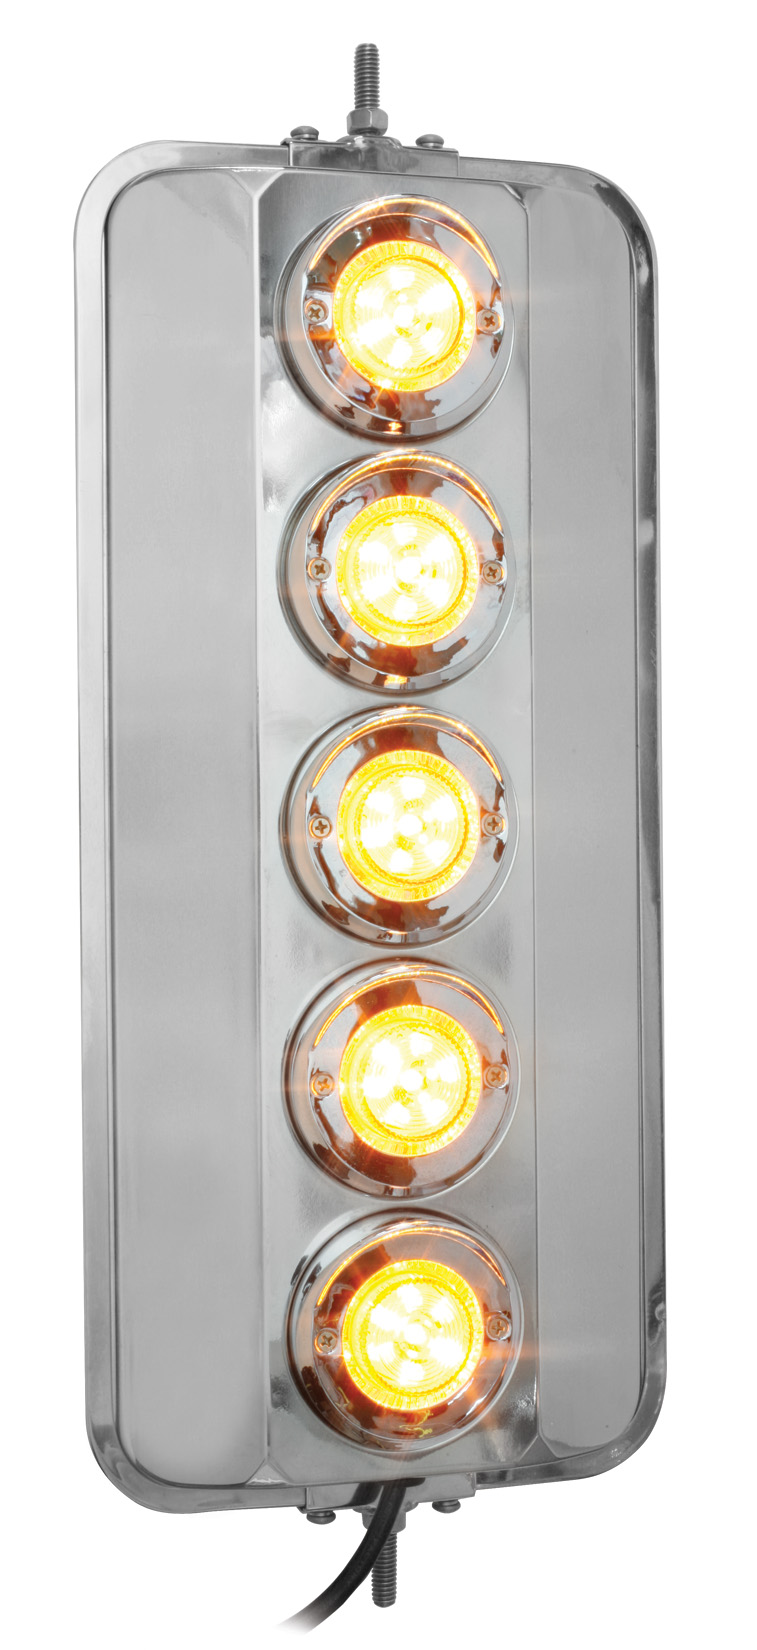 16353 – West Coast Heated Mirror With Auxiliary LED Turn Signal Light, Universal Fit